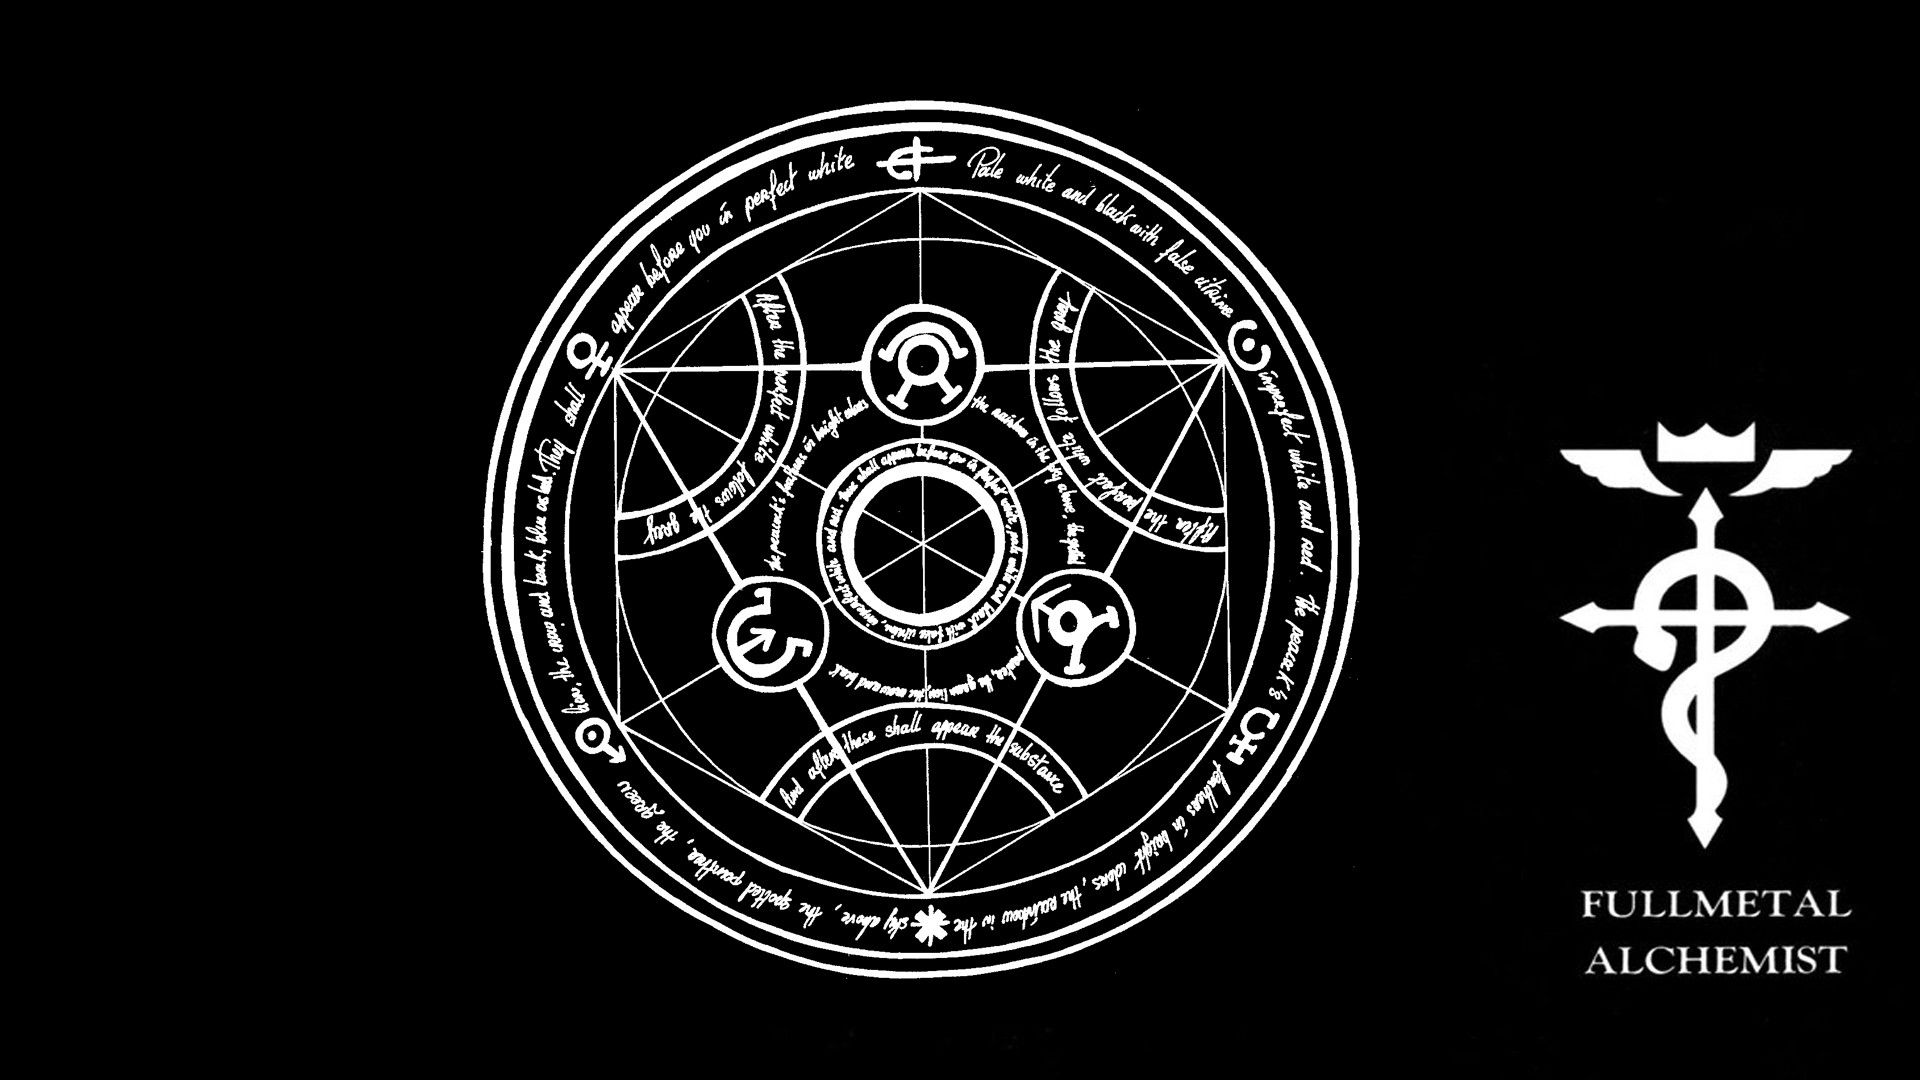 Wallpapers For Fullmetal Alchemist Wallpaper Logo 1920x1080